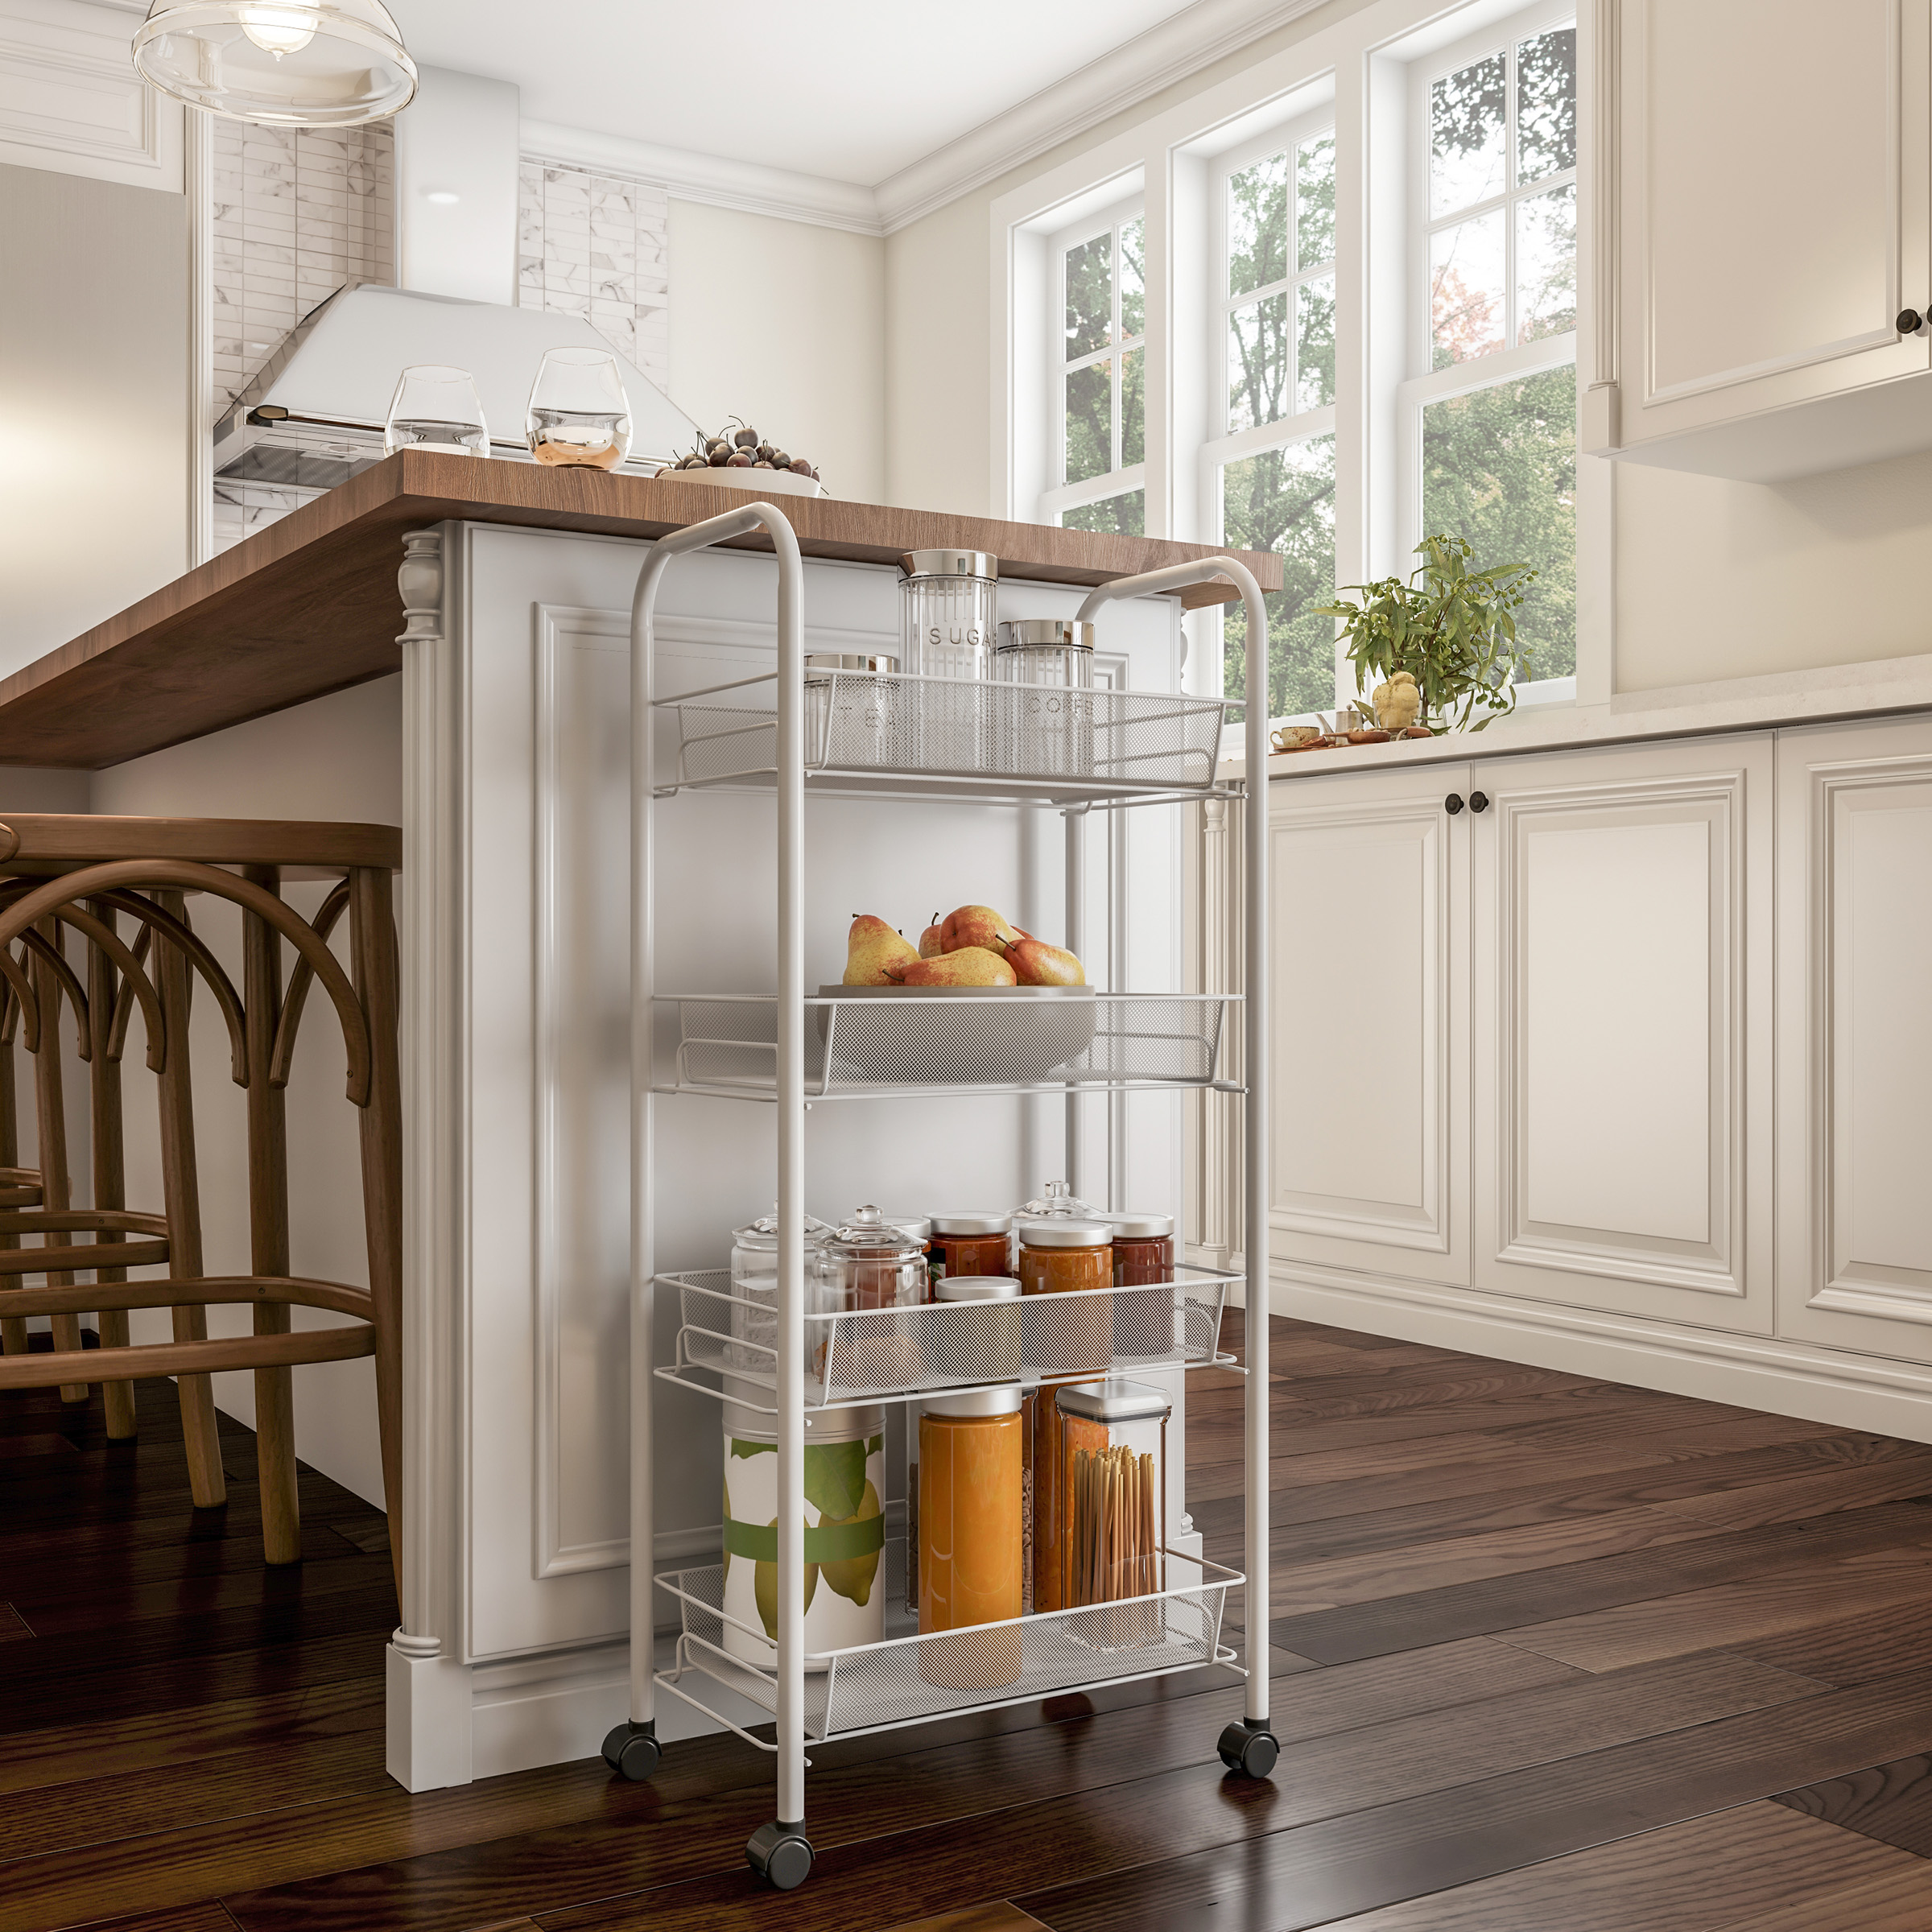 4-Tiered Narrow Rolling Storage Shelves - Mobile Space Saving Utility Organizer Cart for Kitchen, Bathroom, Laundry, Garage or Office by Lavish Home